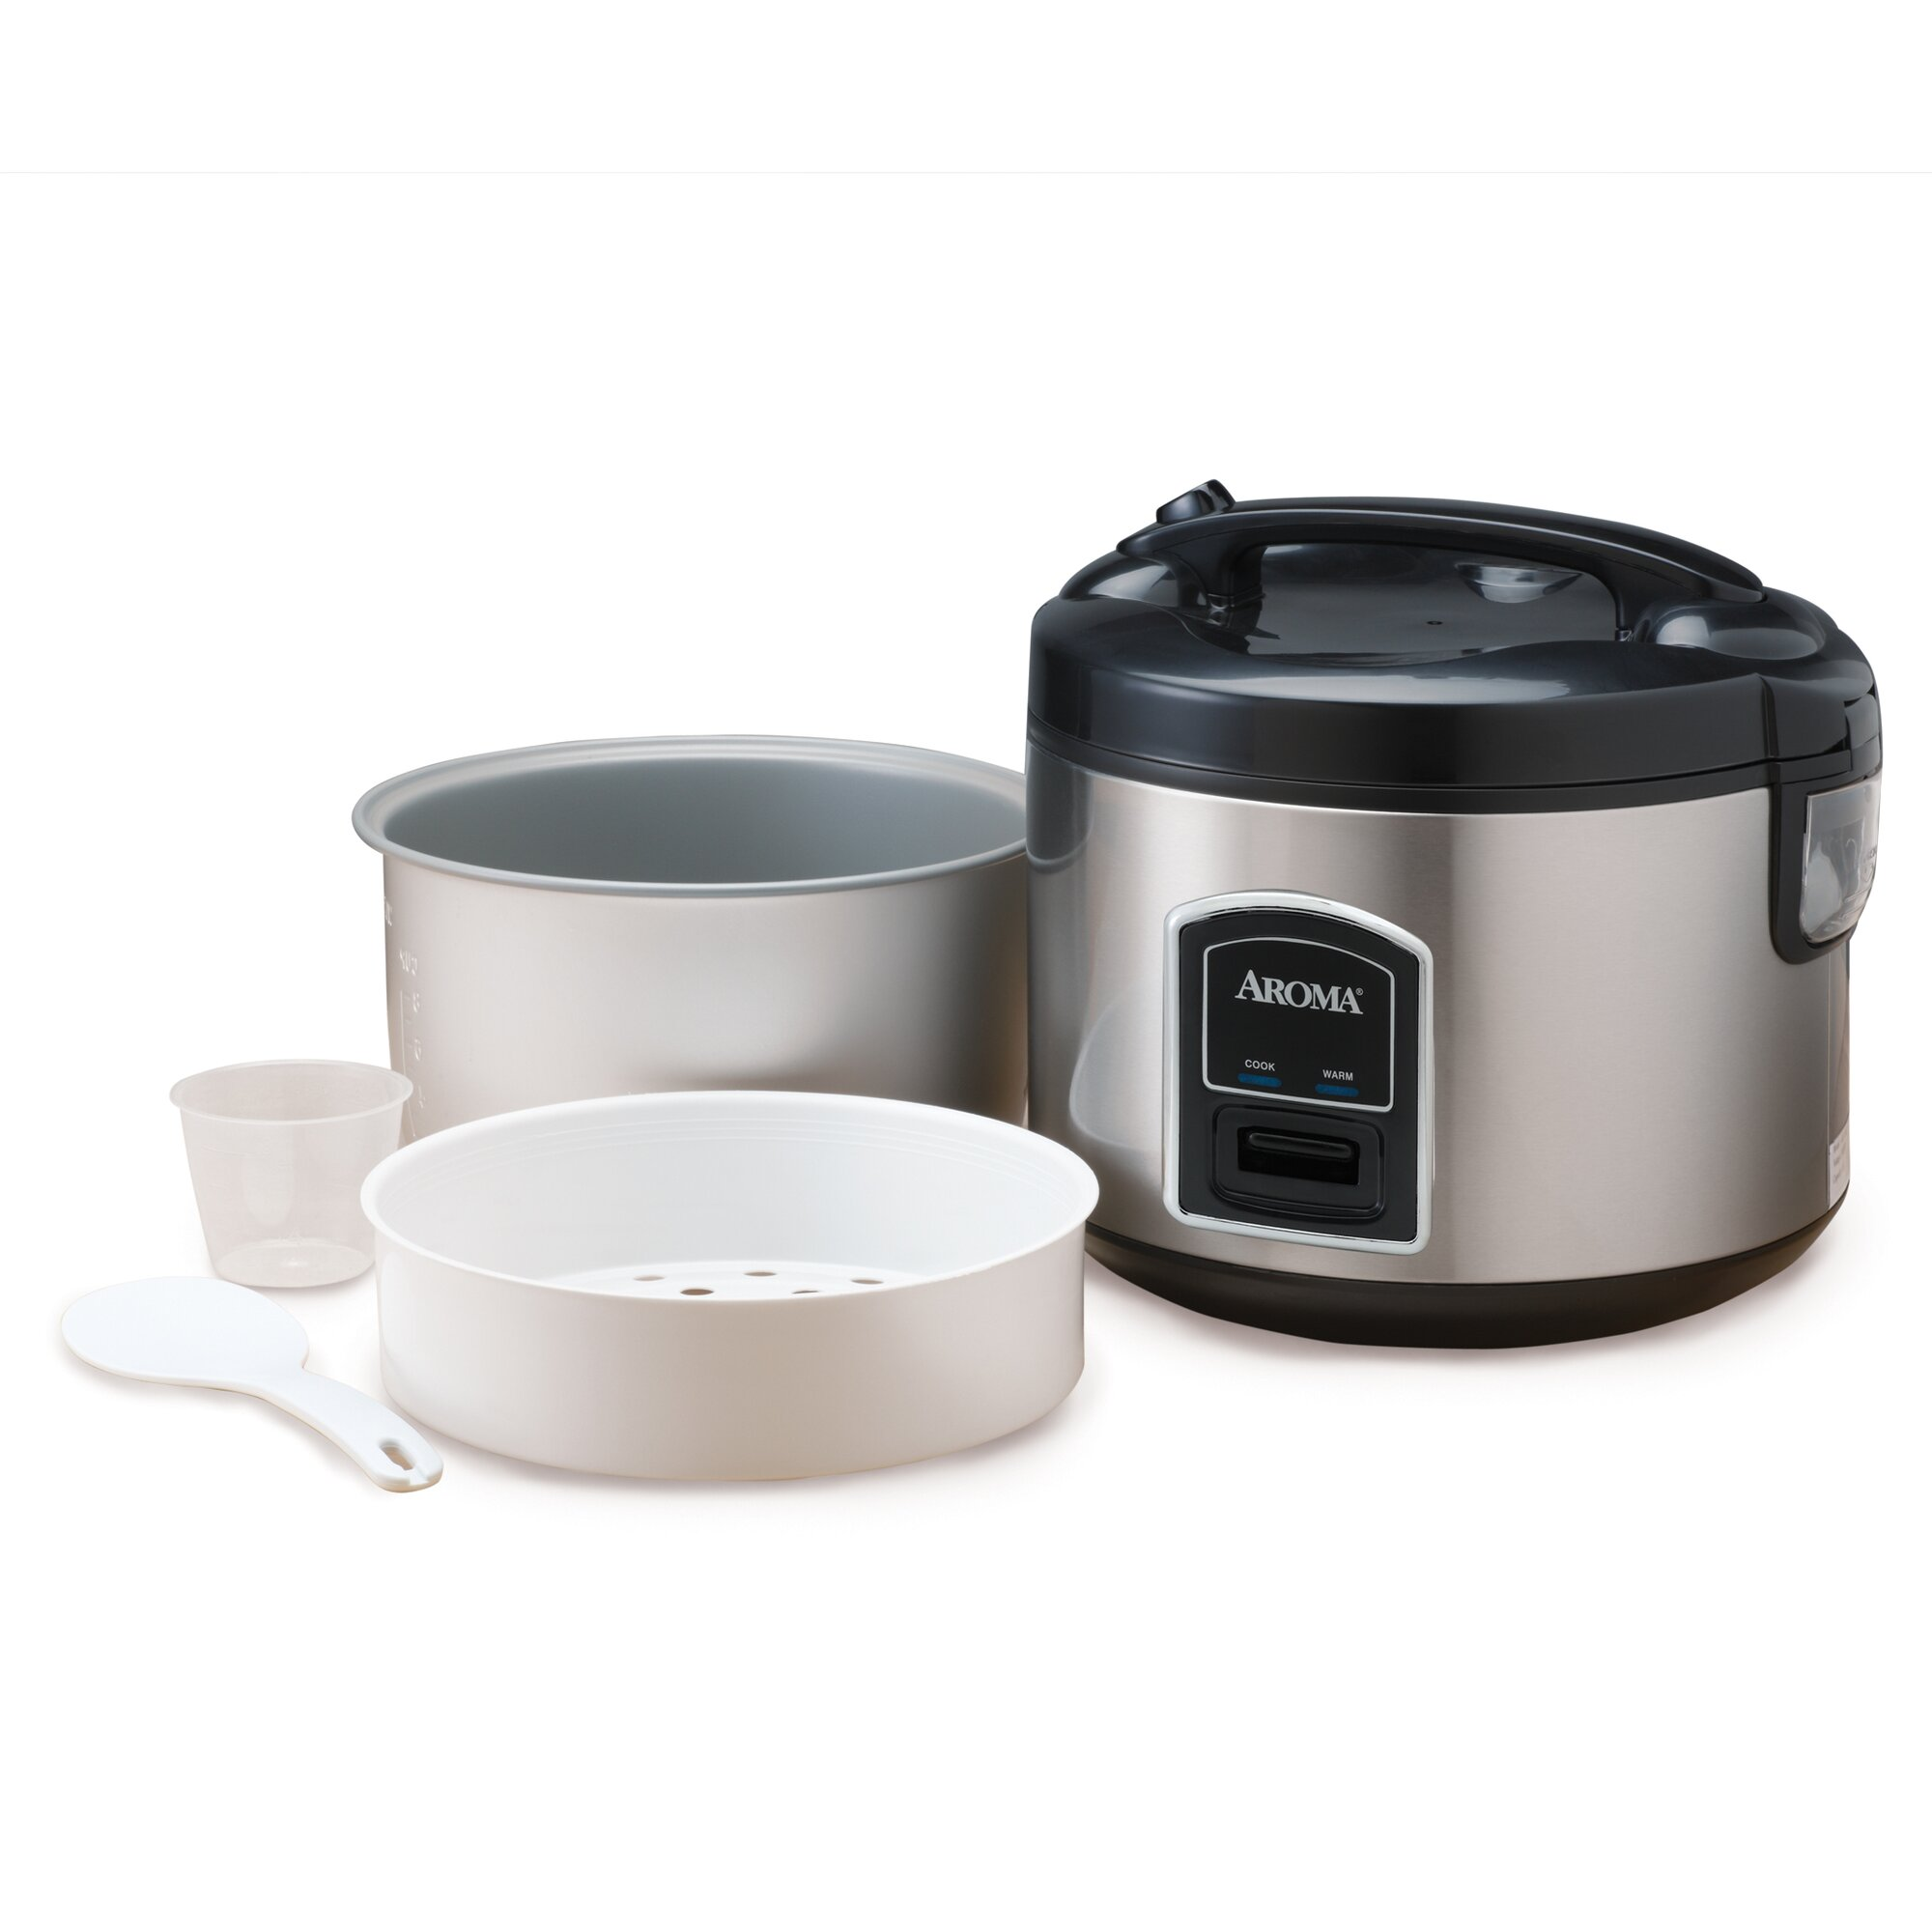 Aroma Rice Cooker Food Steamer Reviews